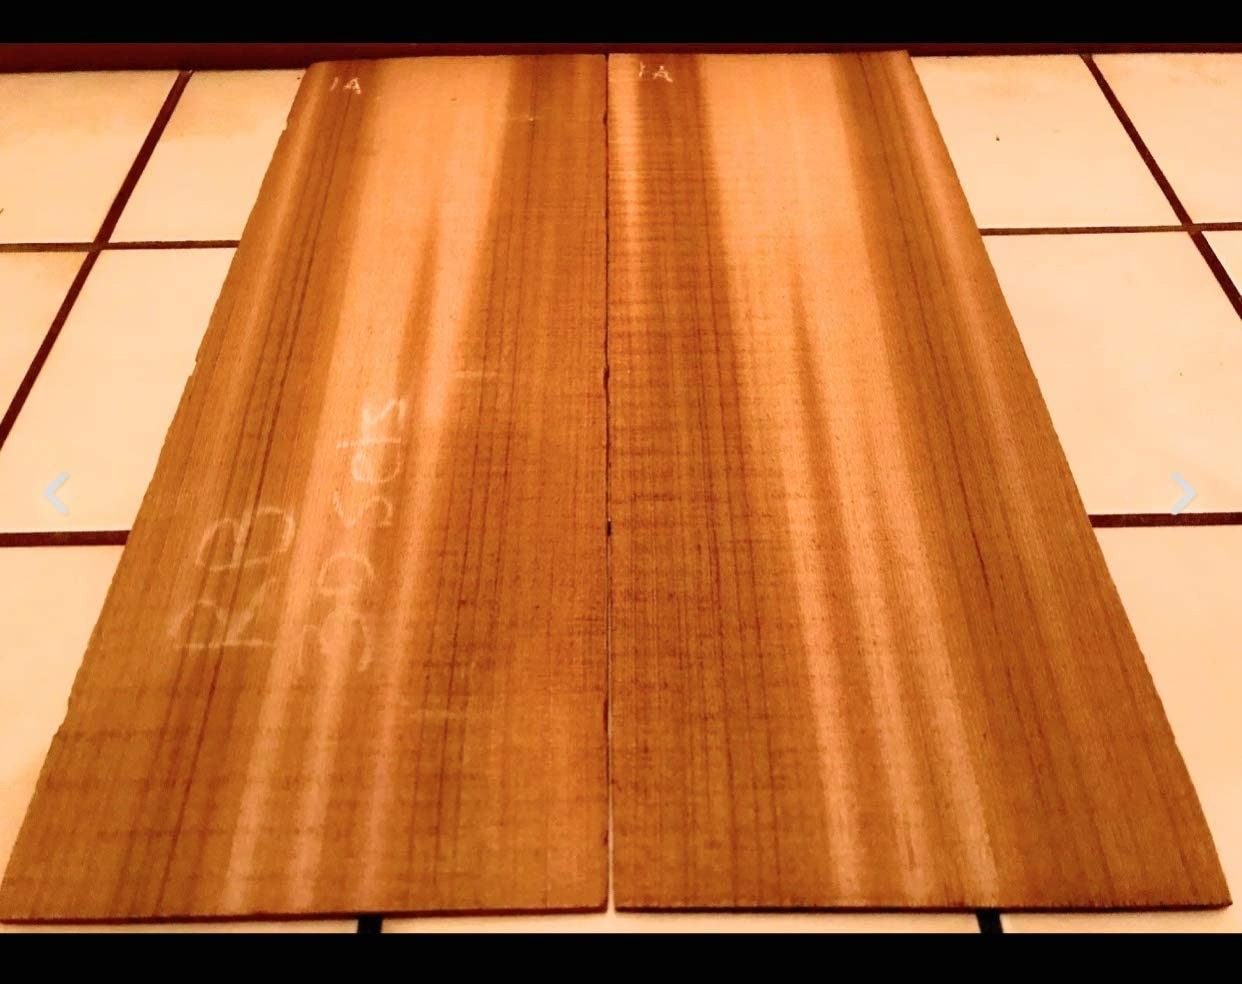 Globalwoods Western Red Cedar Wood Guitar Top Set Book Matched Quartersawn For DIY Guitar Building Projects